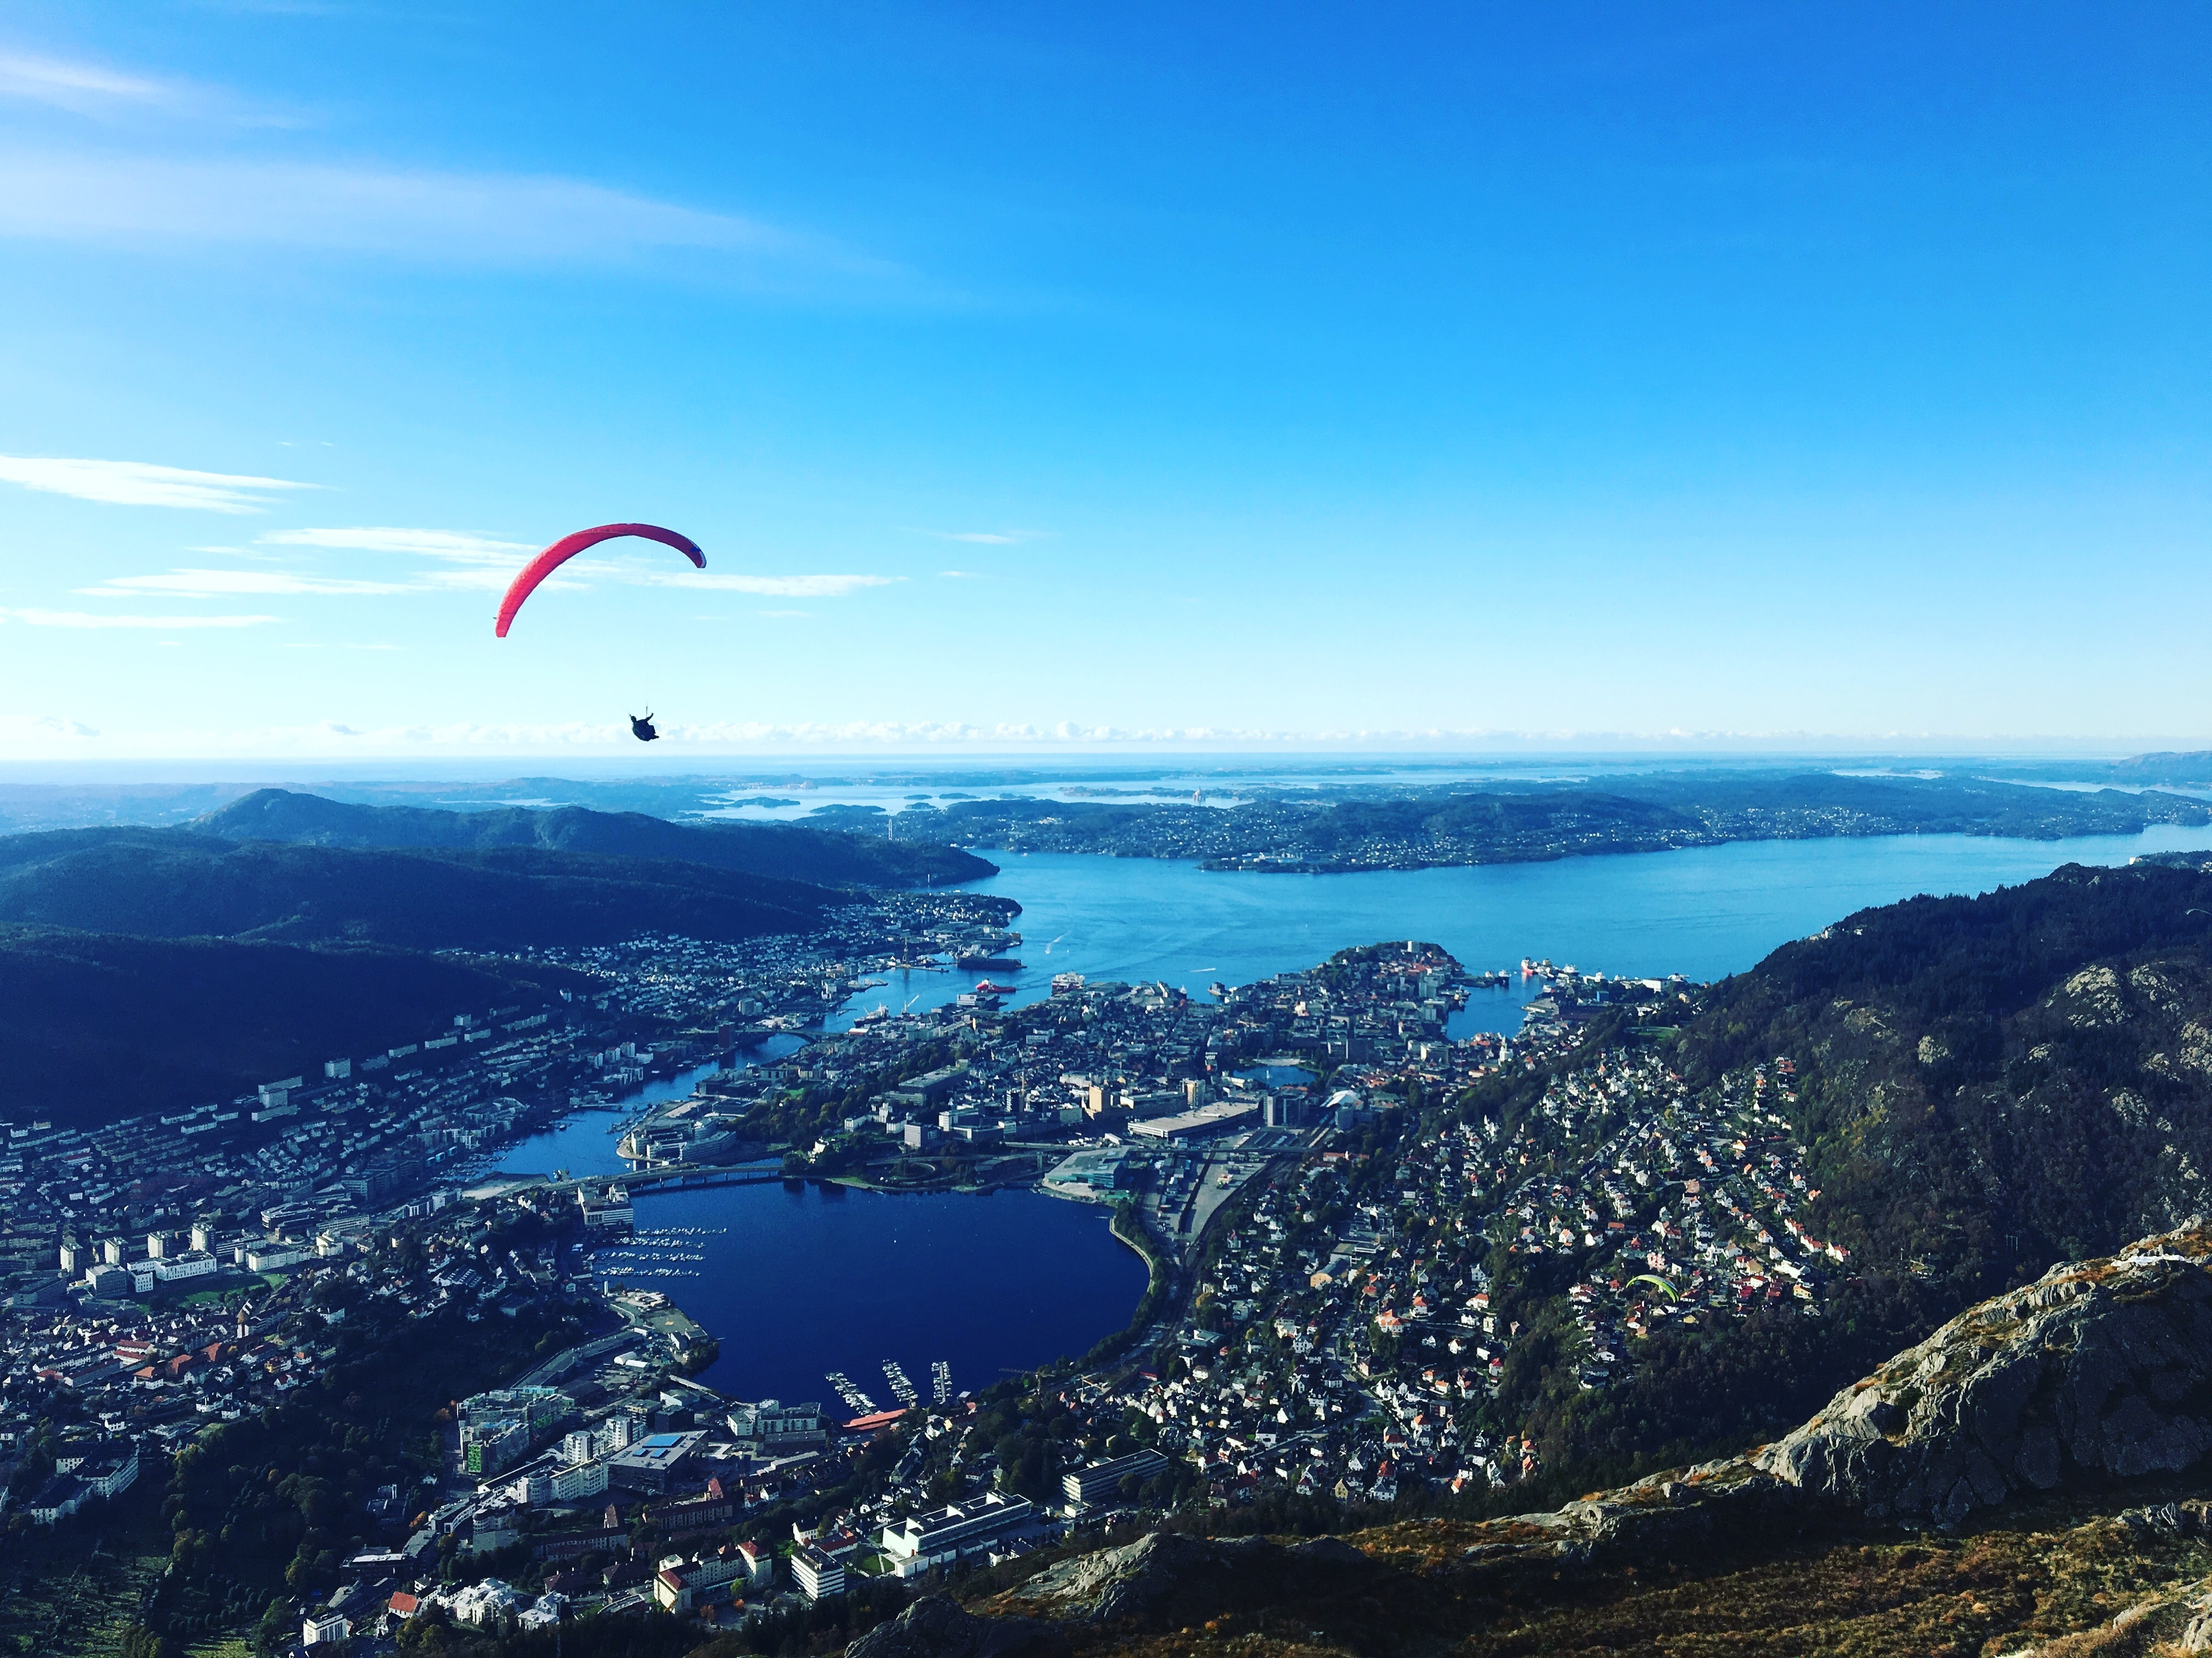 paraglider above buildings and body of water at daytime